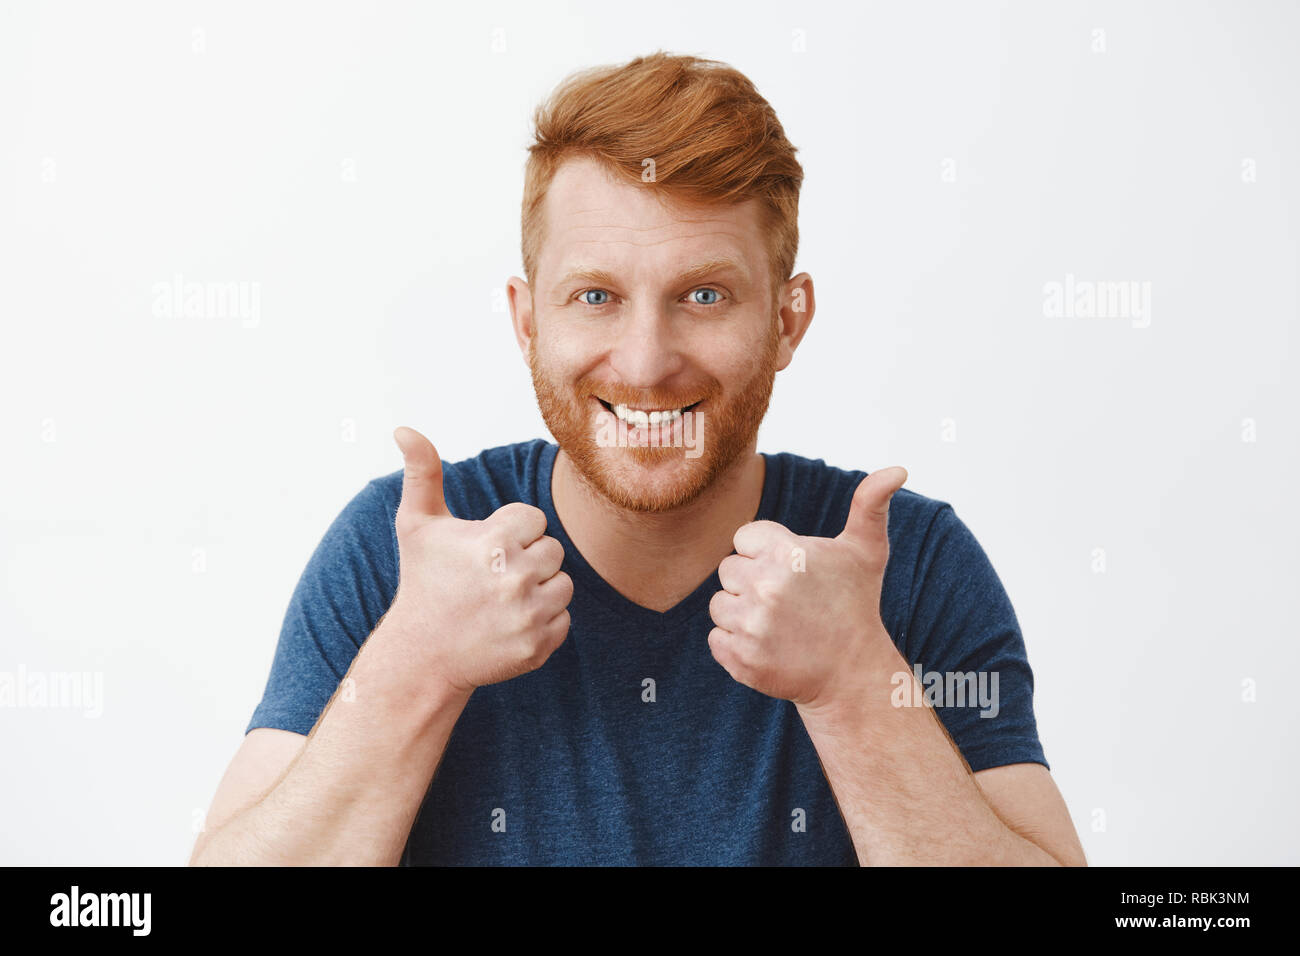 Supportive and attractive adult redhead male with bristle liking great plan raising hands, showing thumbs up, smiling joyfully, accepting nice idea or cheering friend who trying talk to charming woman - Stock Image